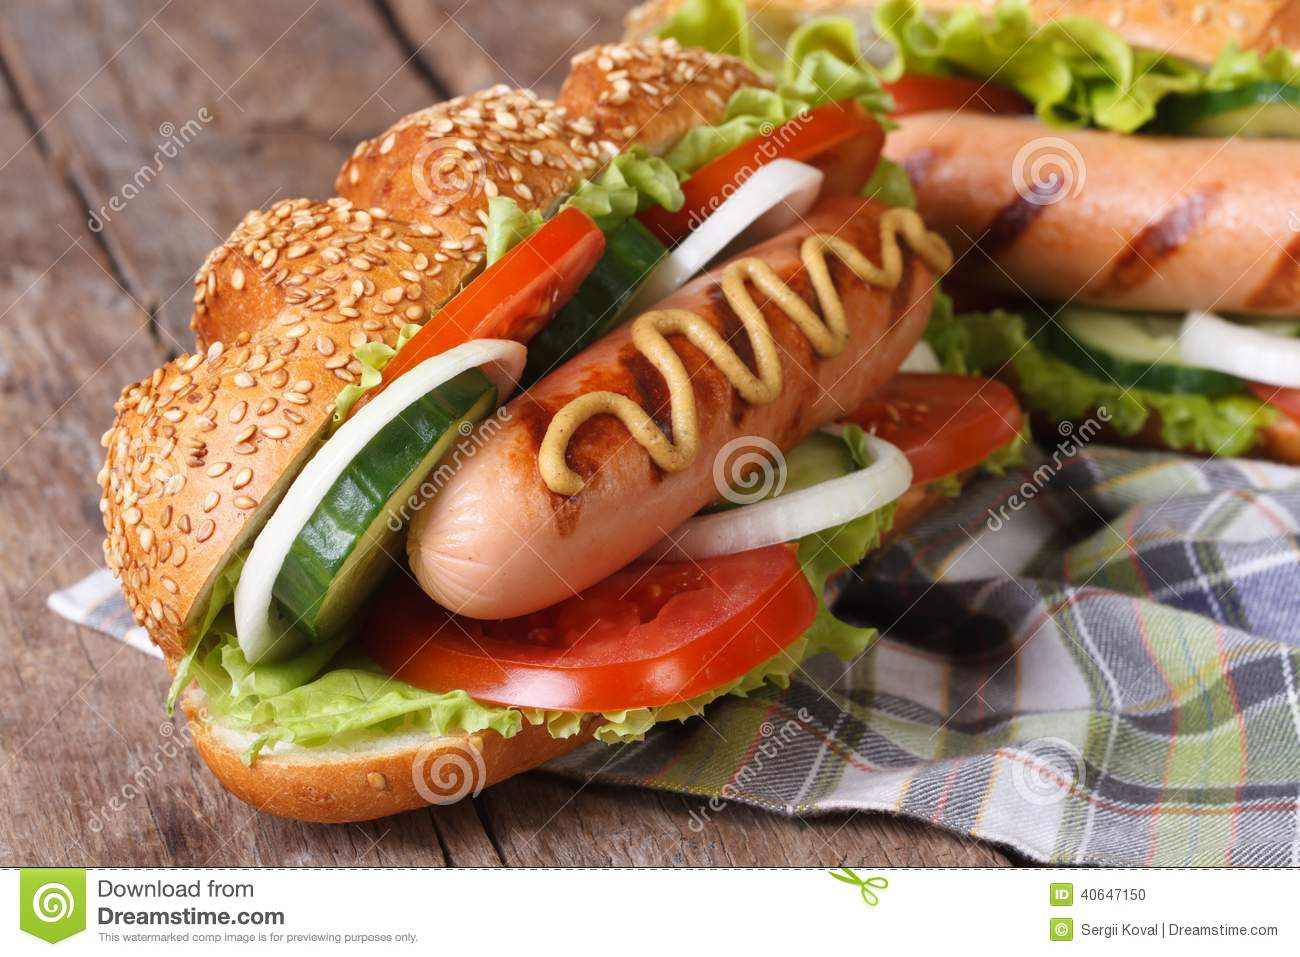 Hot Dog In A Bun With Sesame Seeds And Grilled Sausage ... Uberhaxornova Animated Classics Hot Dog